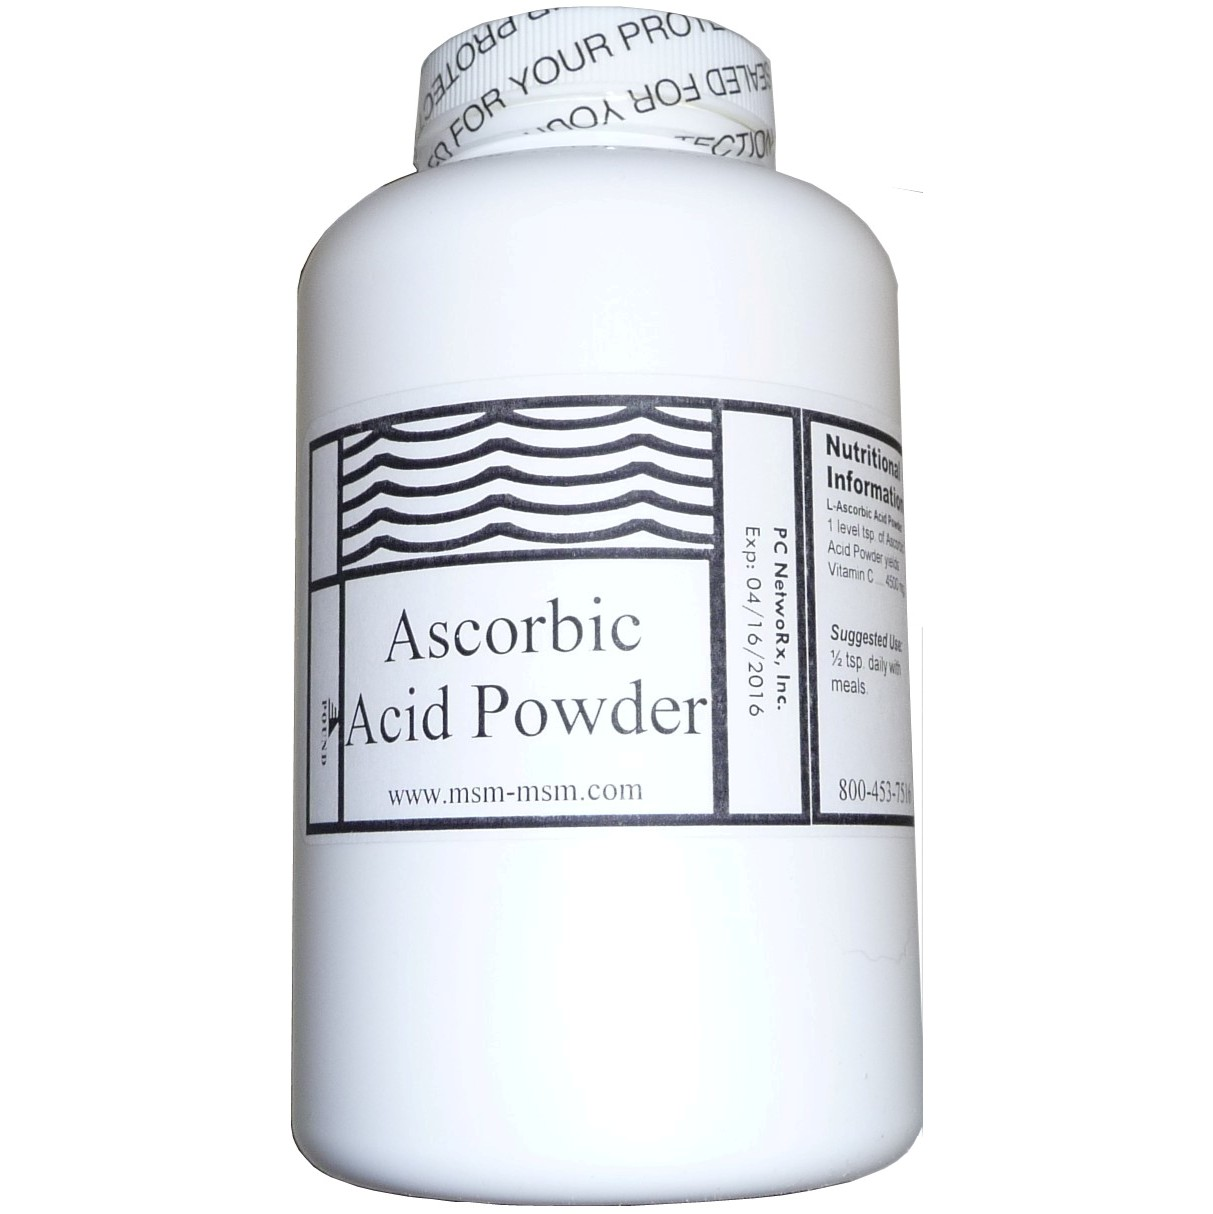 1 lb Bottle Ascorbic Acid Powder